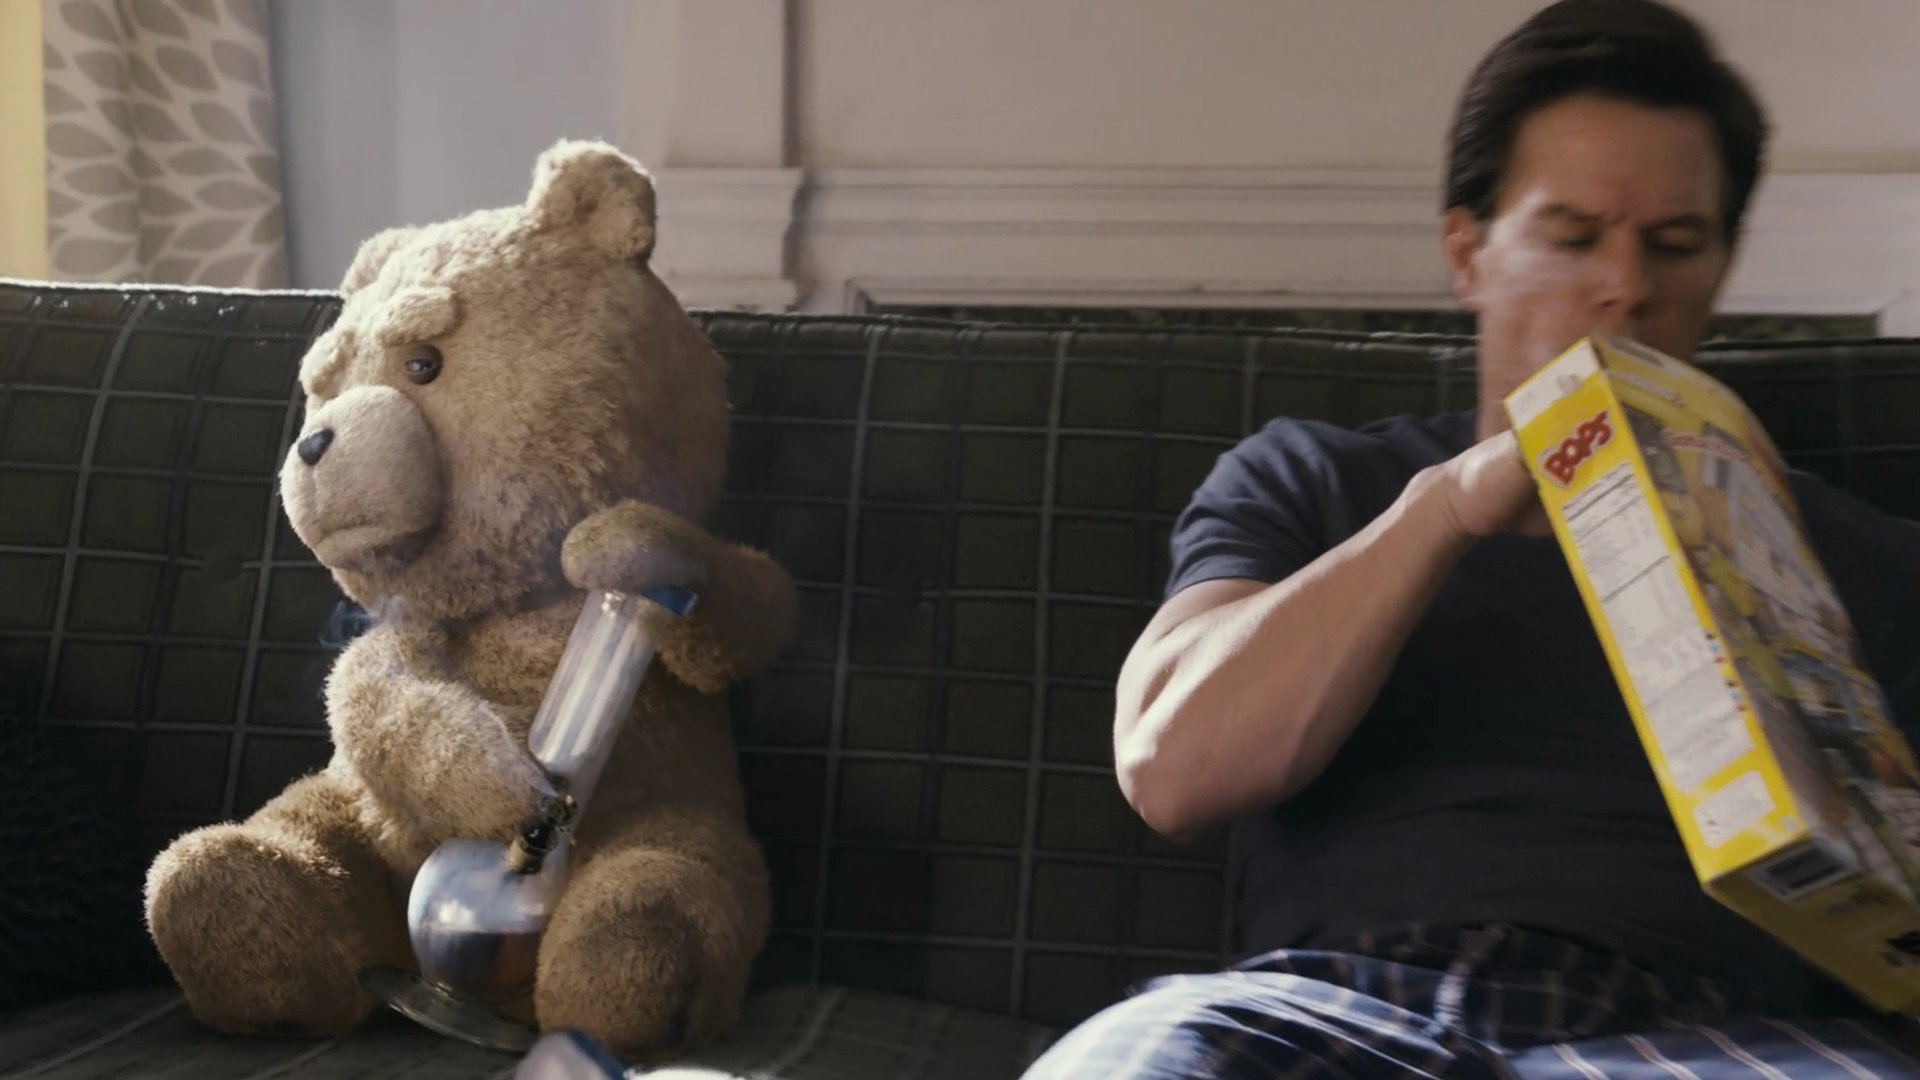 Ted Wallpaper 1920x1080 The Image Kid